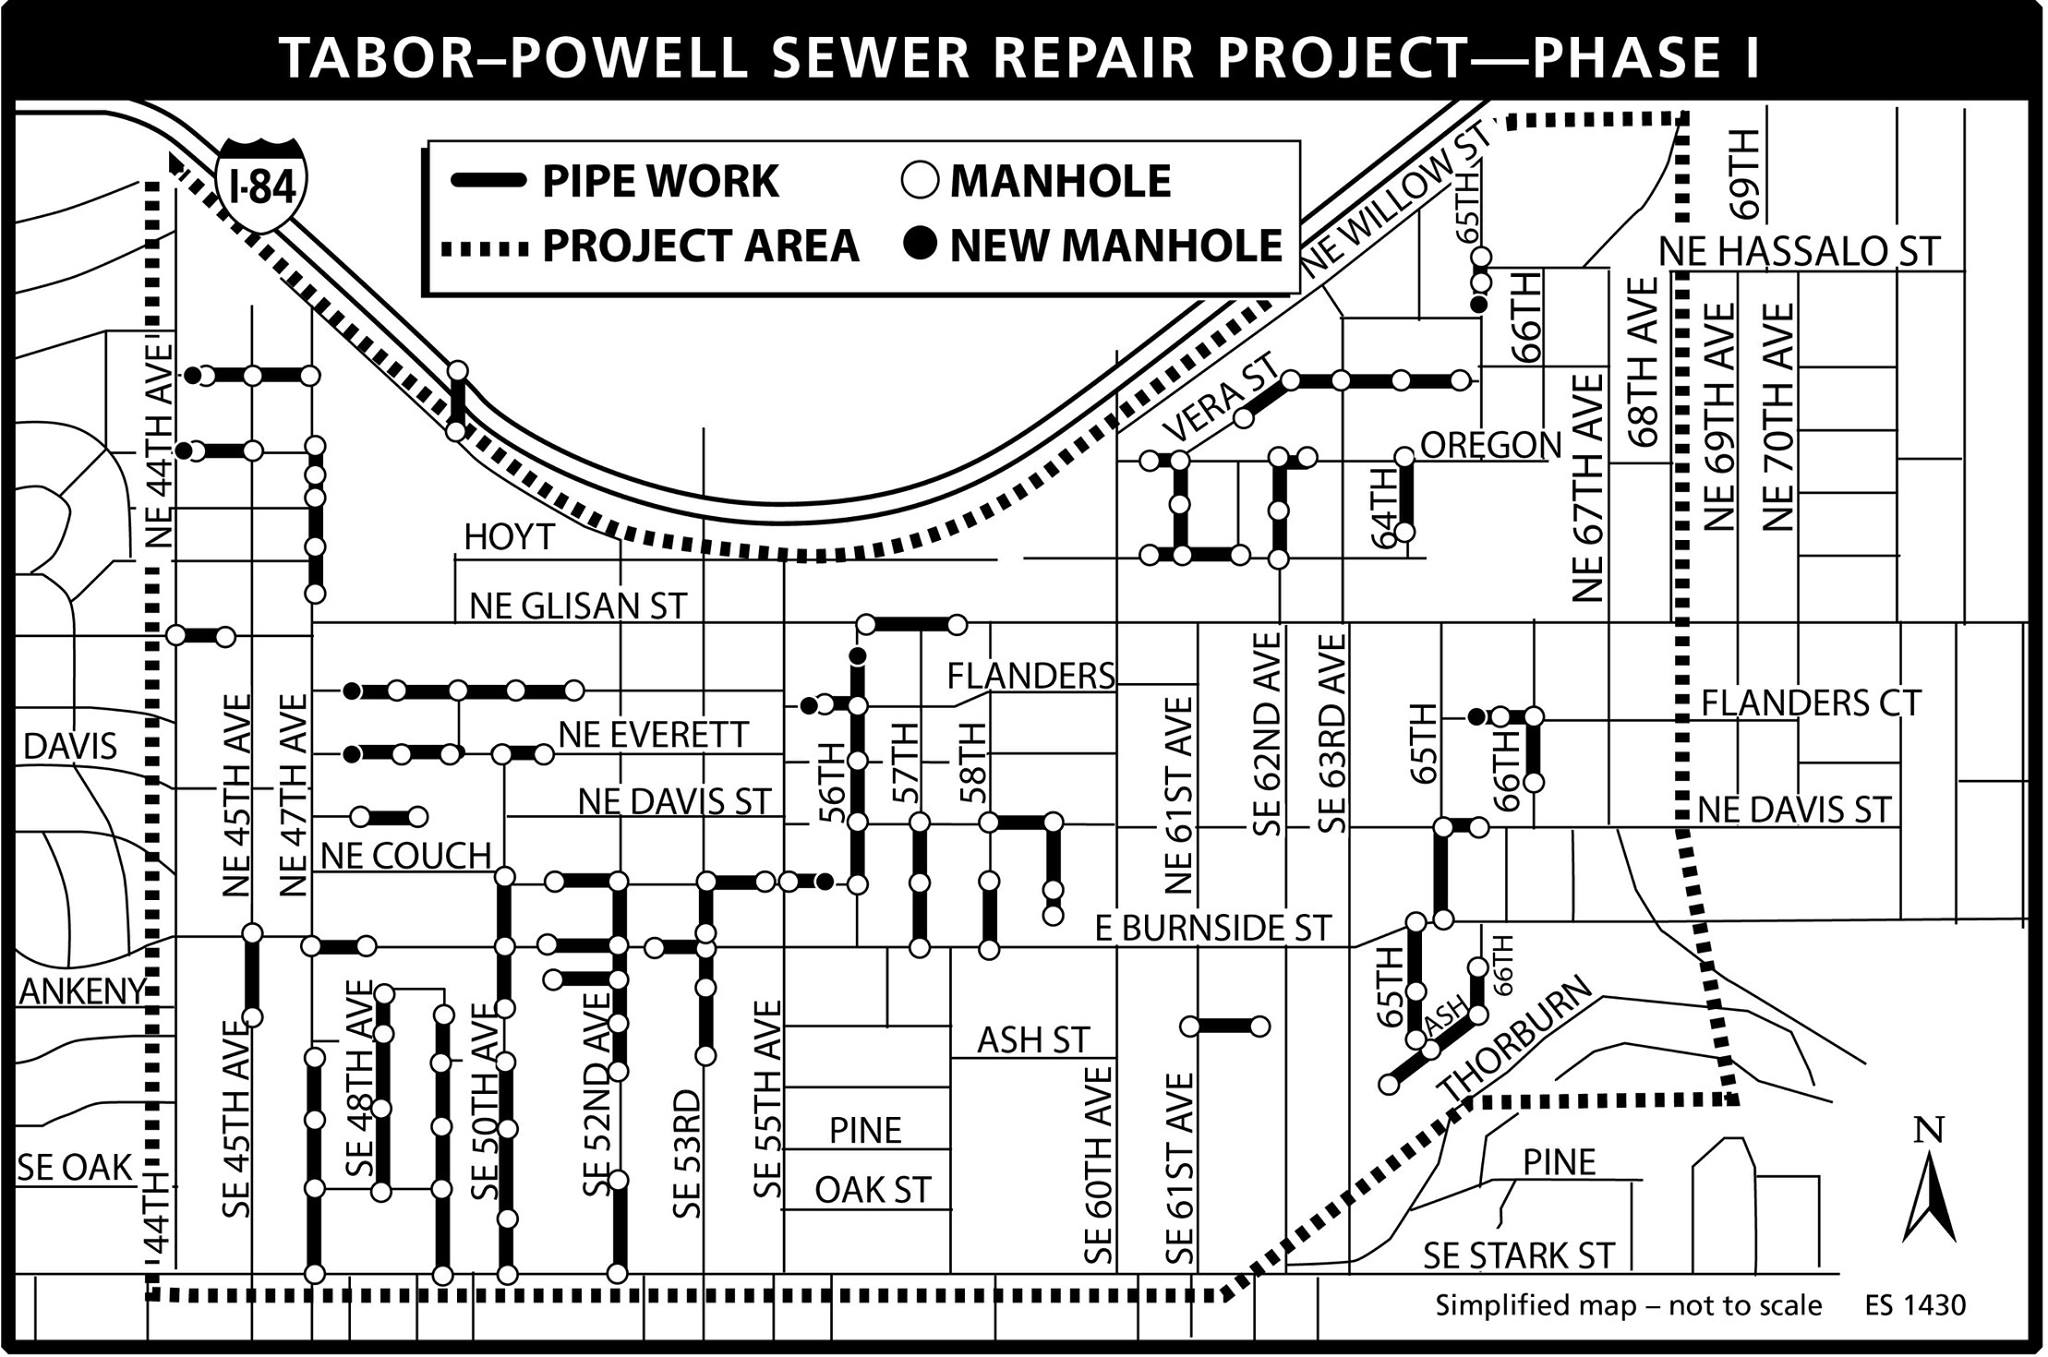 Sewer repairs scheduled early 2015